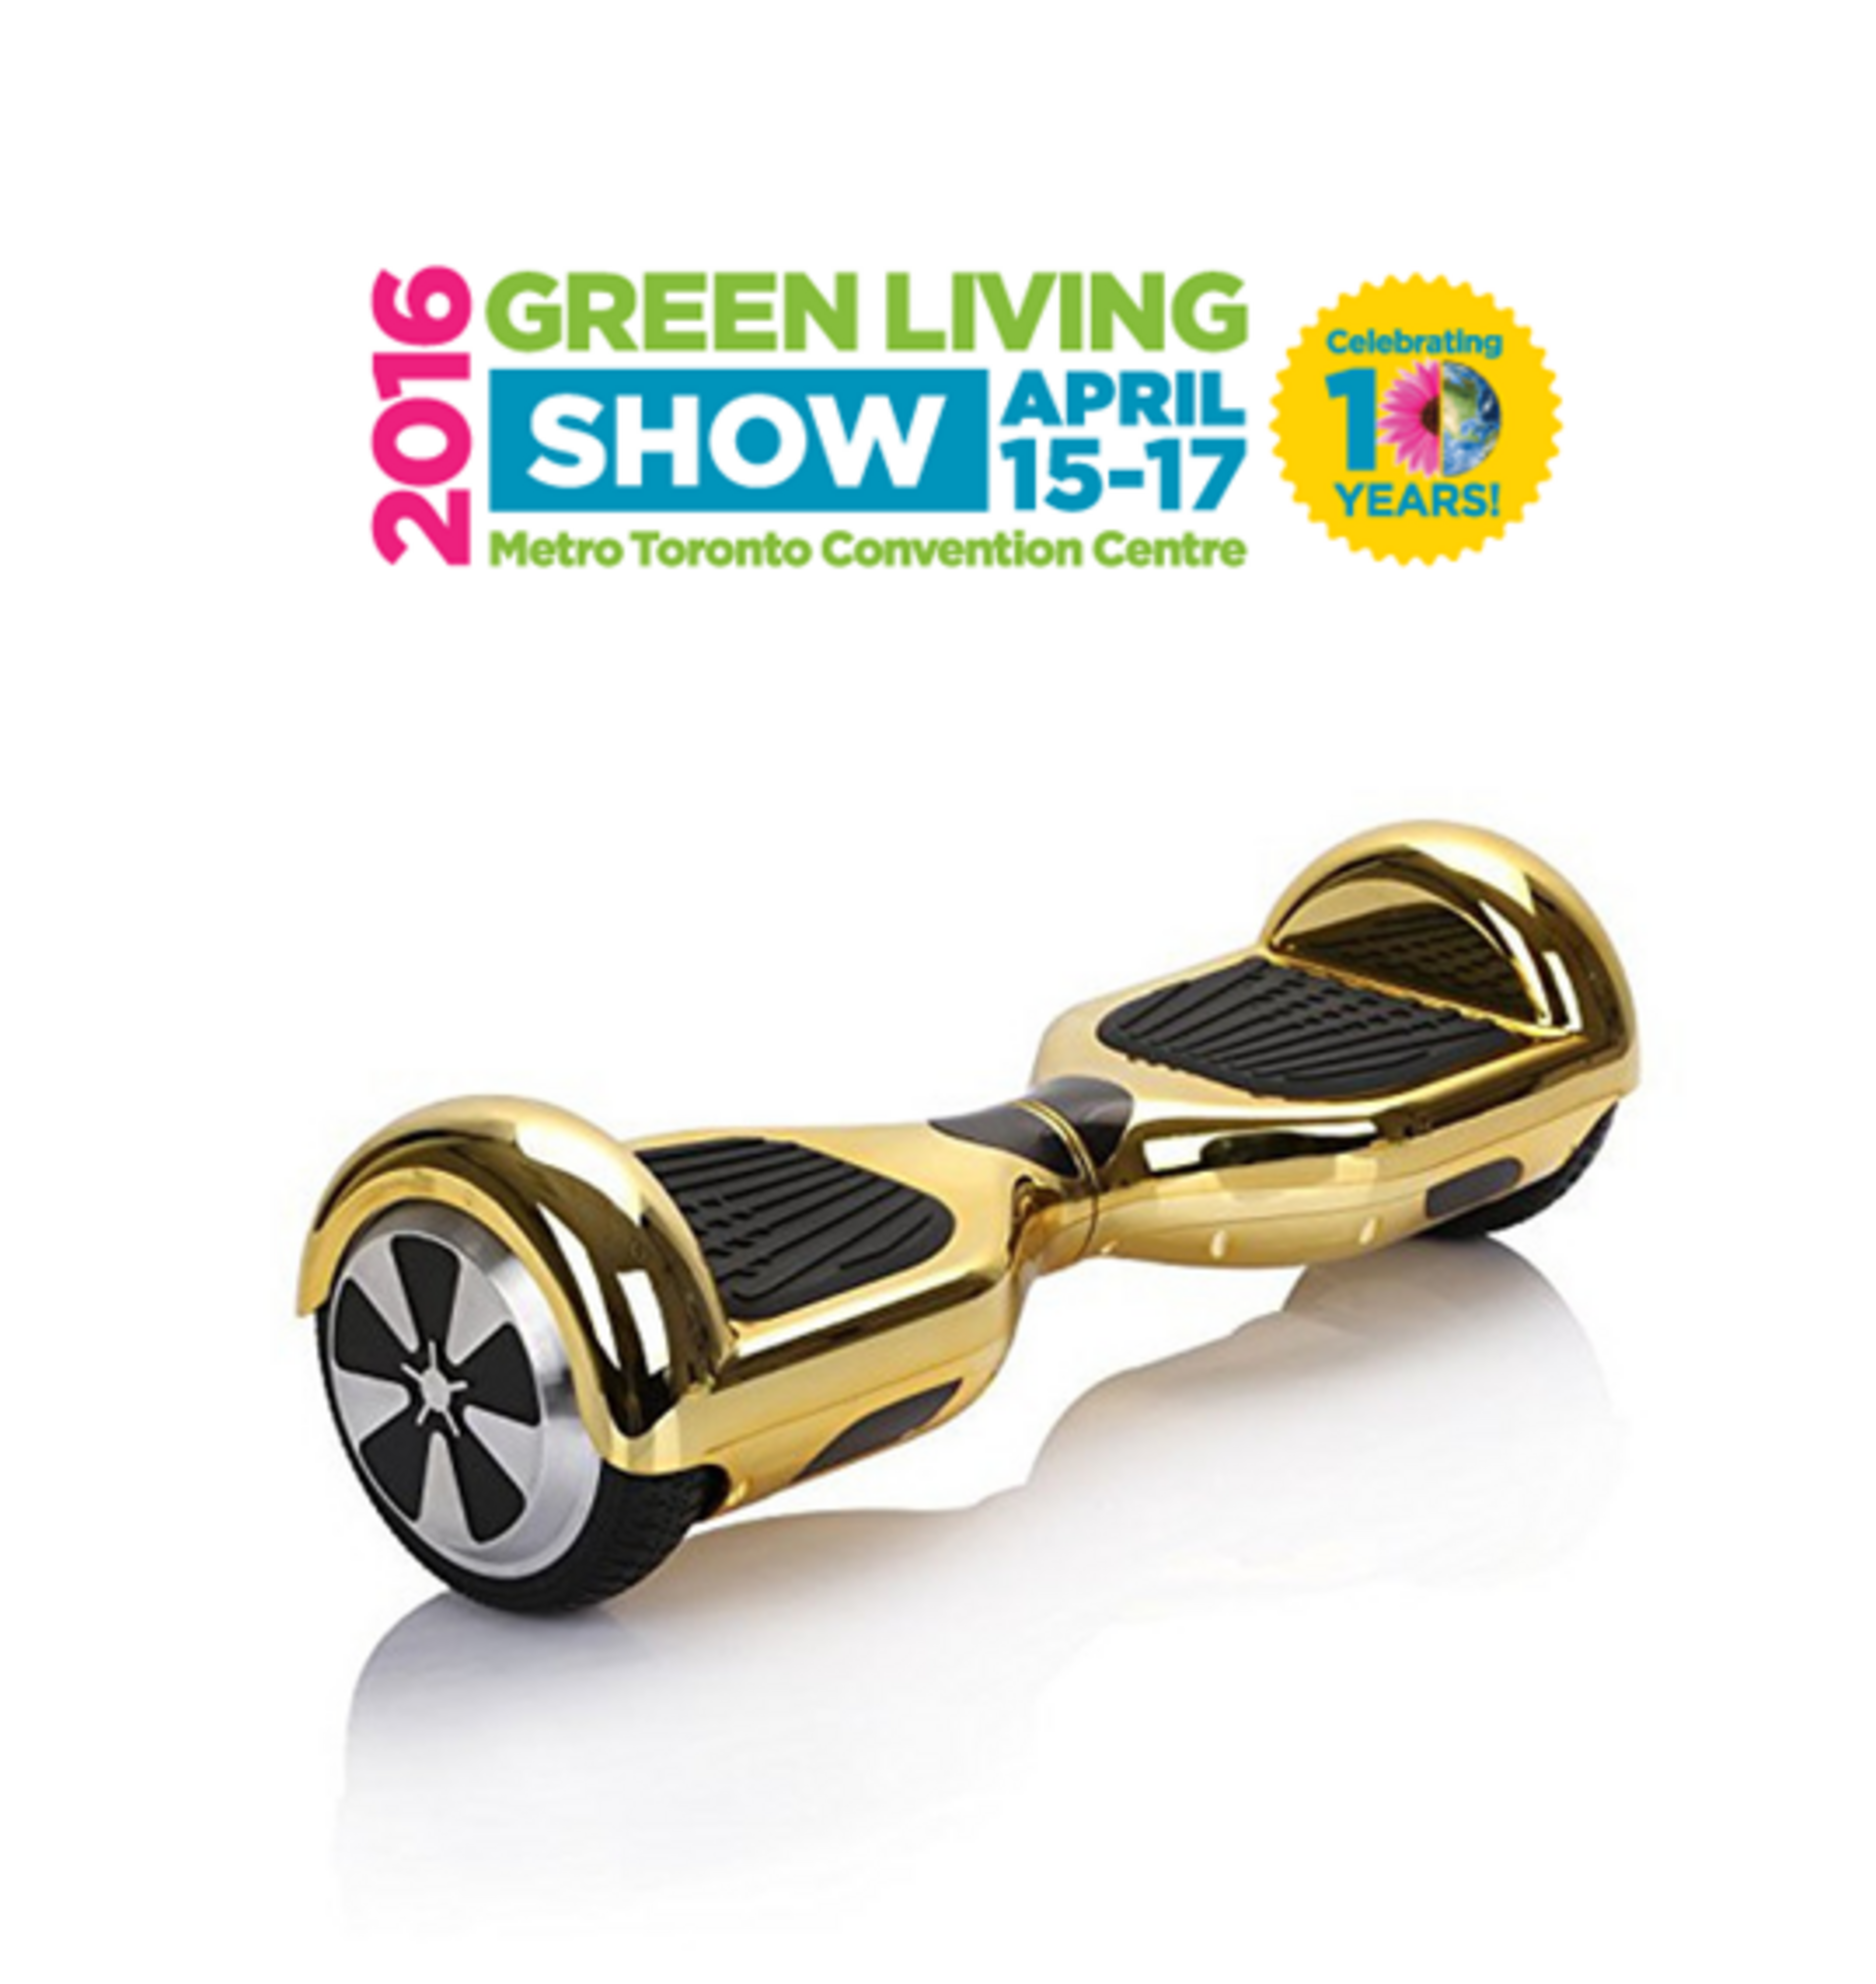 Win A Glydee Hoverboard And Tickets To The Green Living